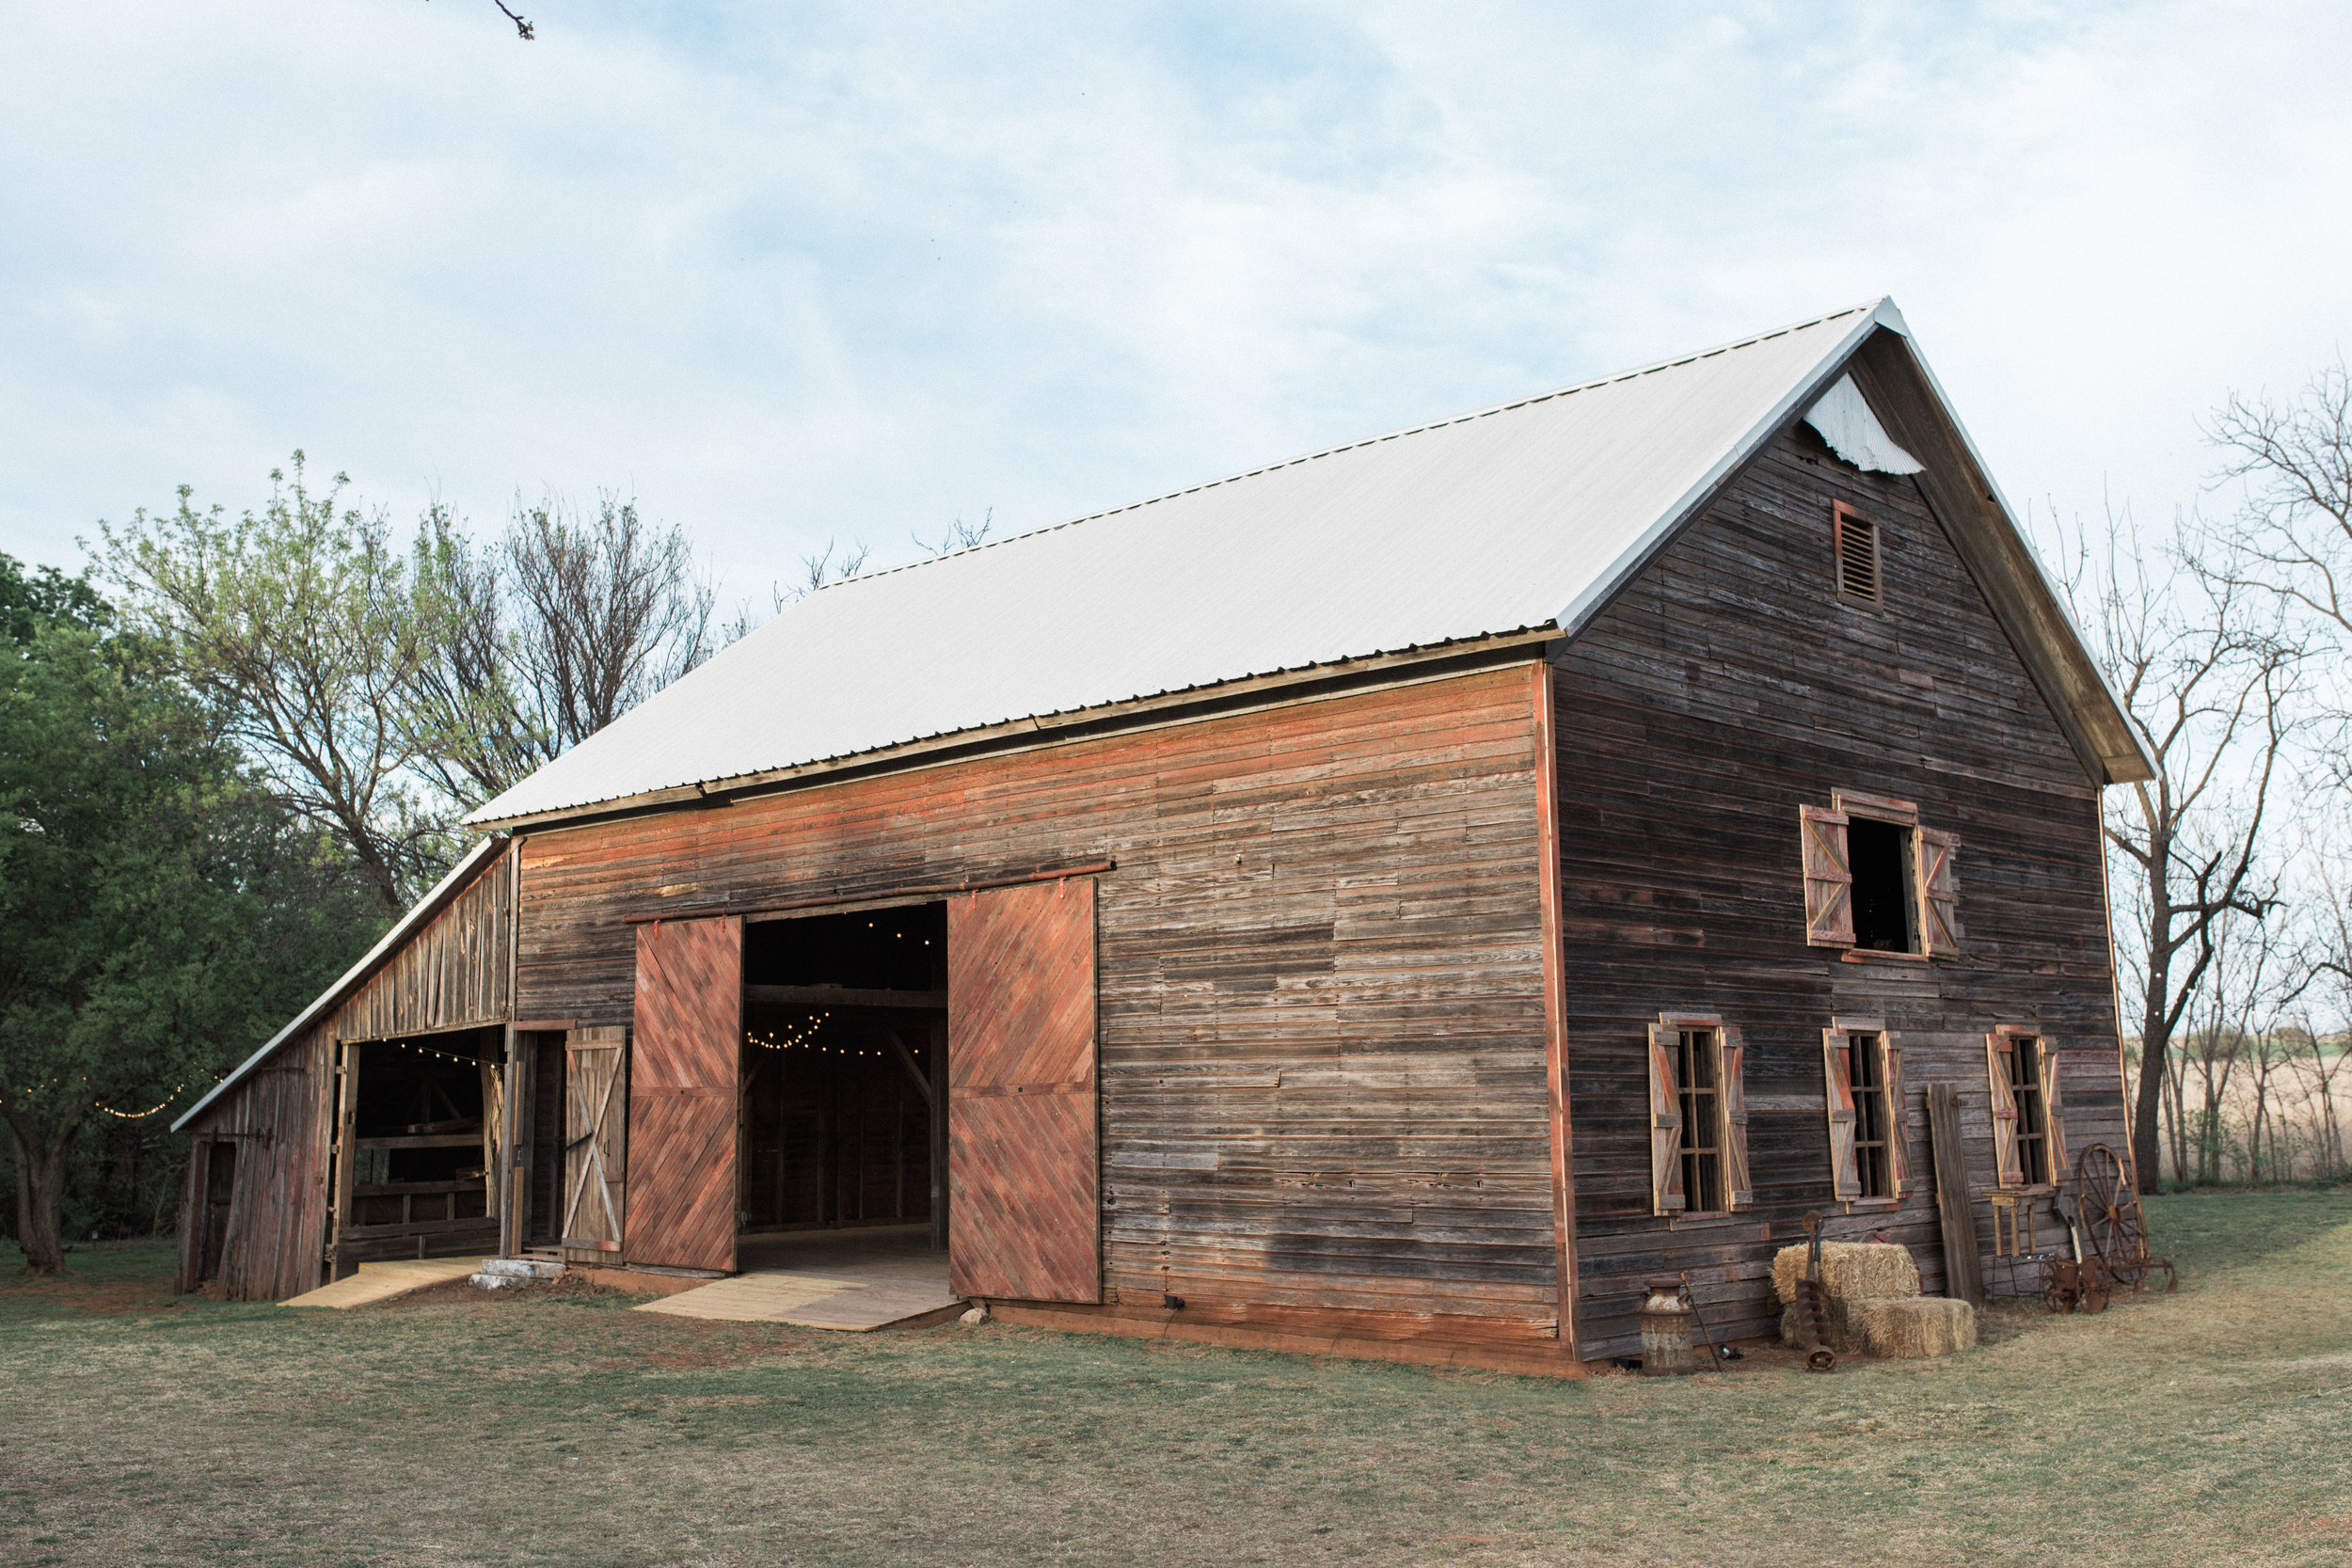 The renovations to our barn are finally complete, and we are so excited to show you around!